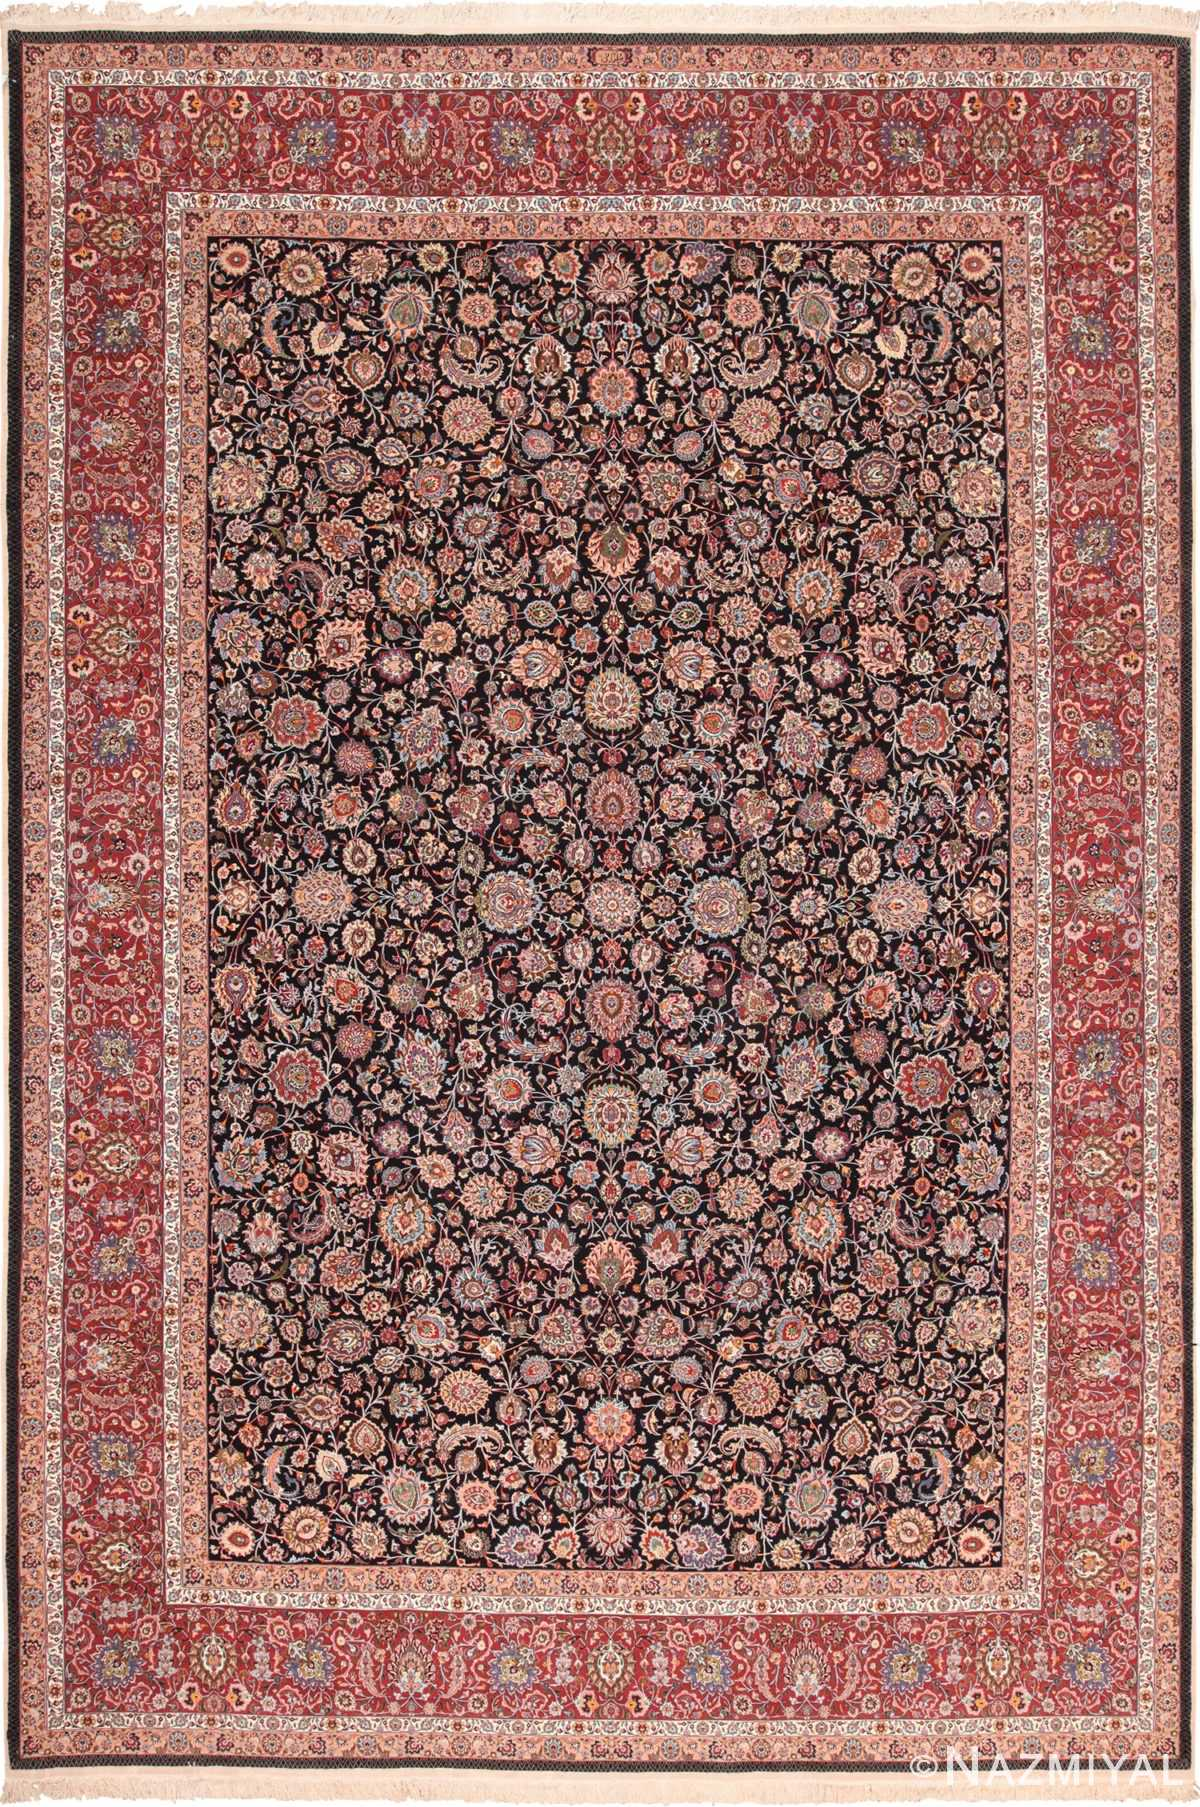 Fine Vintage Floral Silk and Wool Persian Khorassan Rug 60018 by Nazmiyal